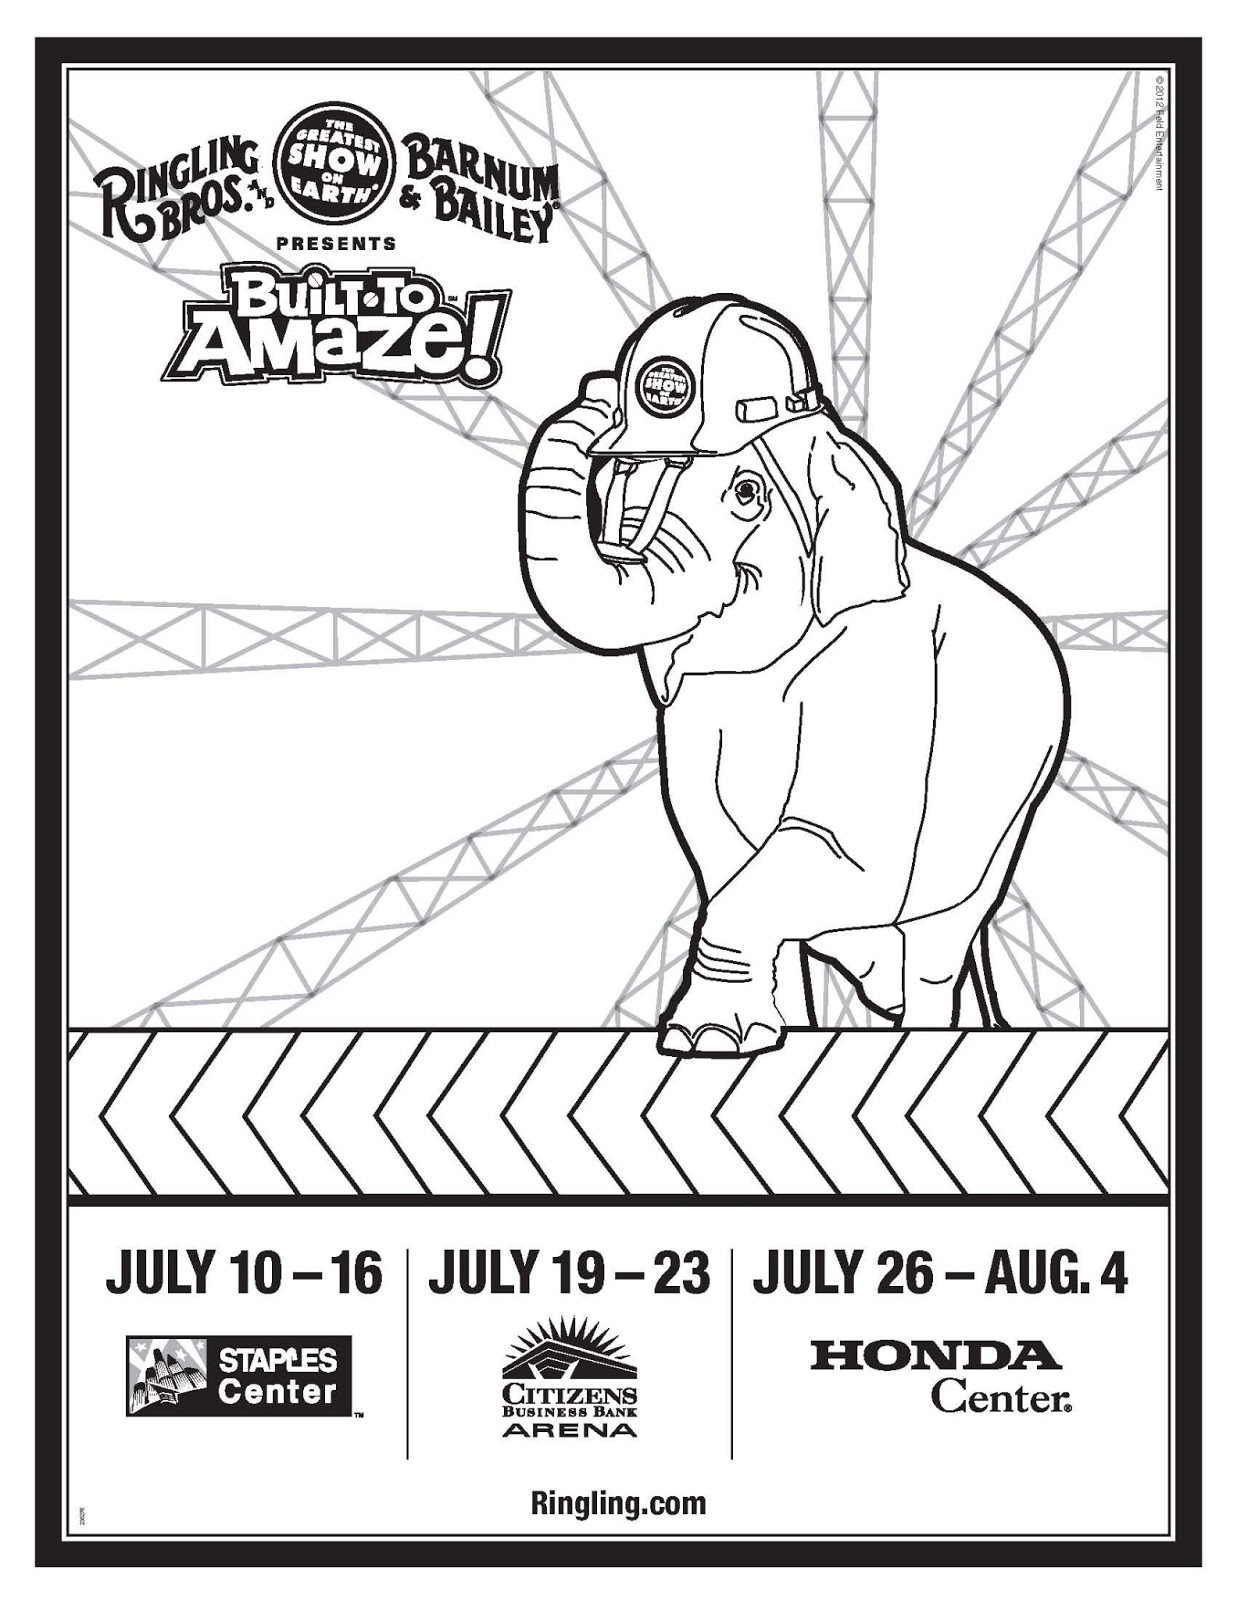 built to amaze circus show schedule plus free coloring sheets